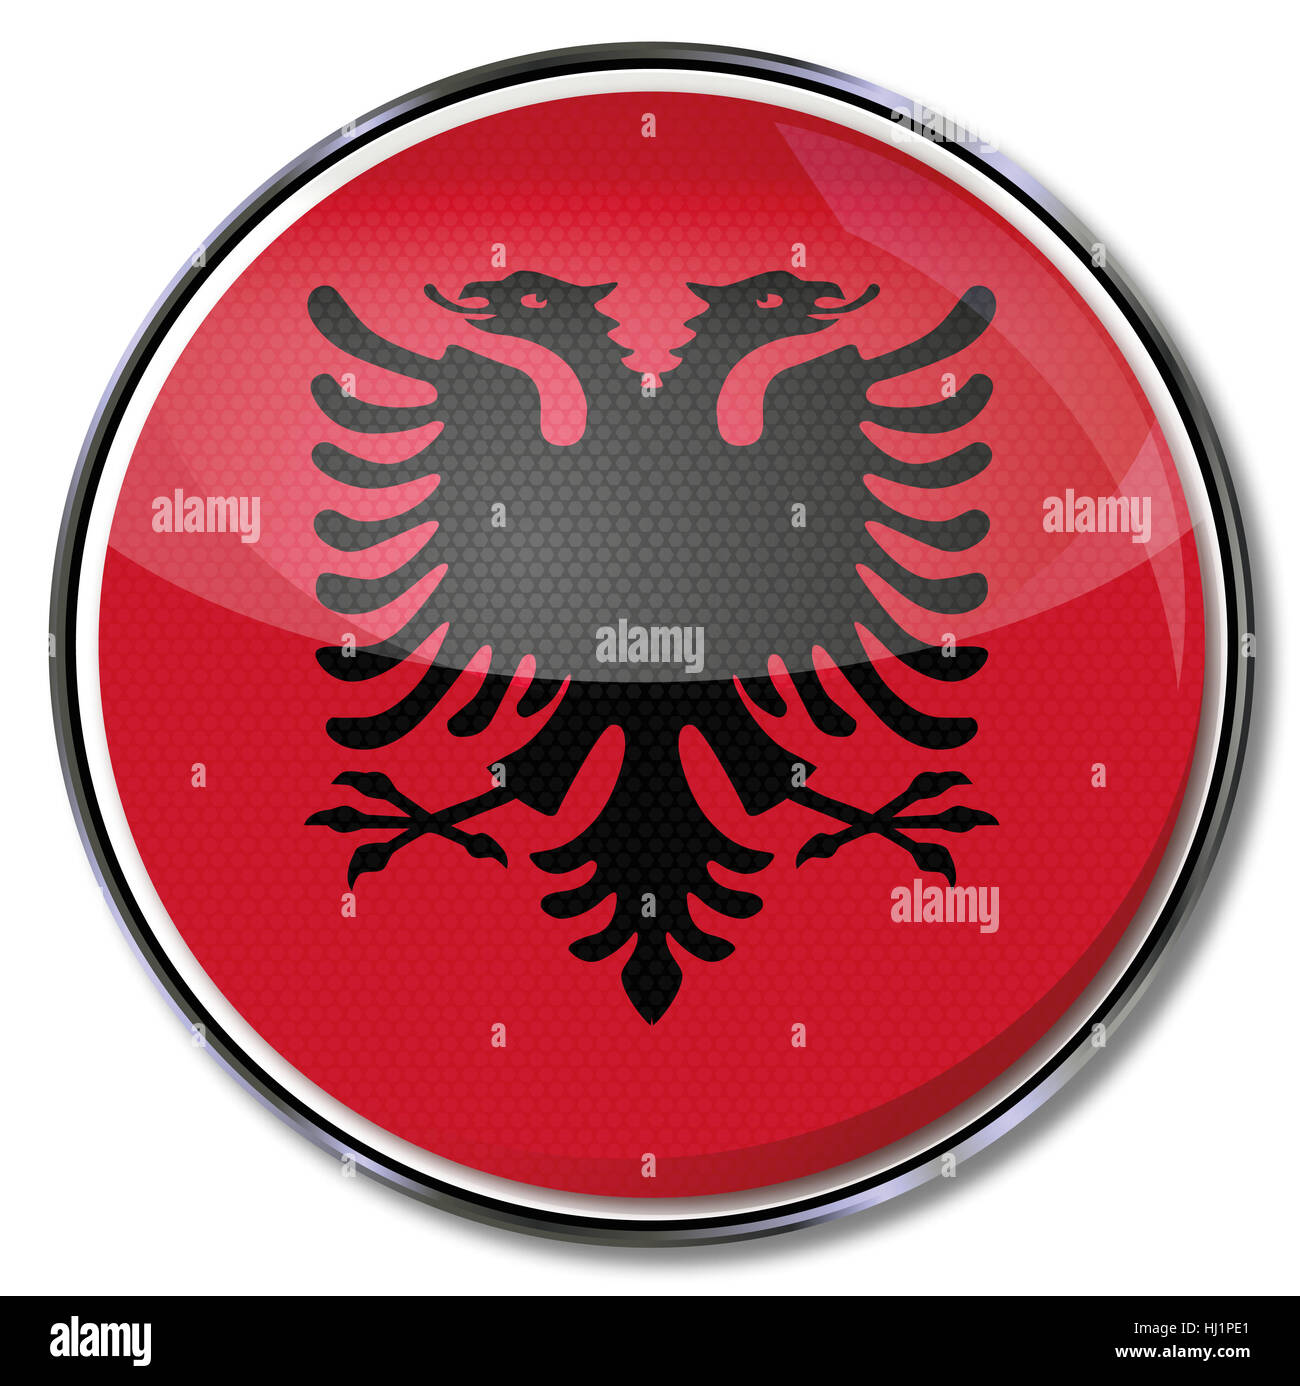 europe, flag, button, adriatic sea, albania, euro, europe, water, - Stock Image